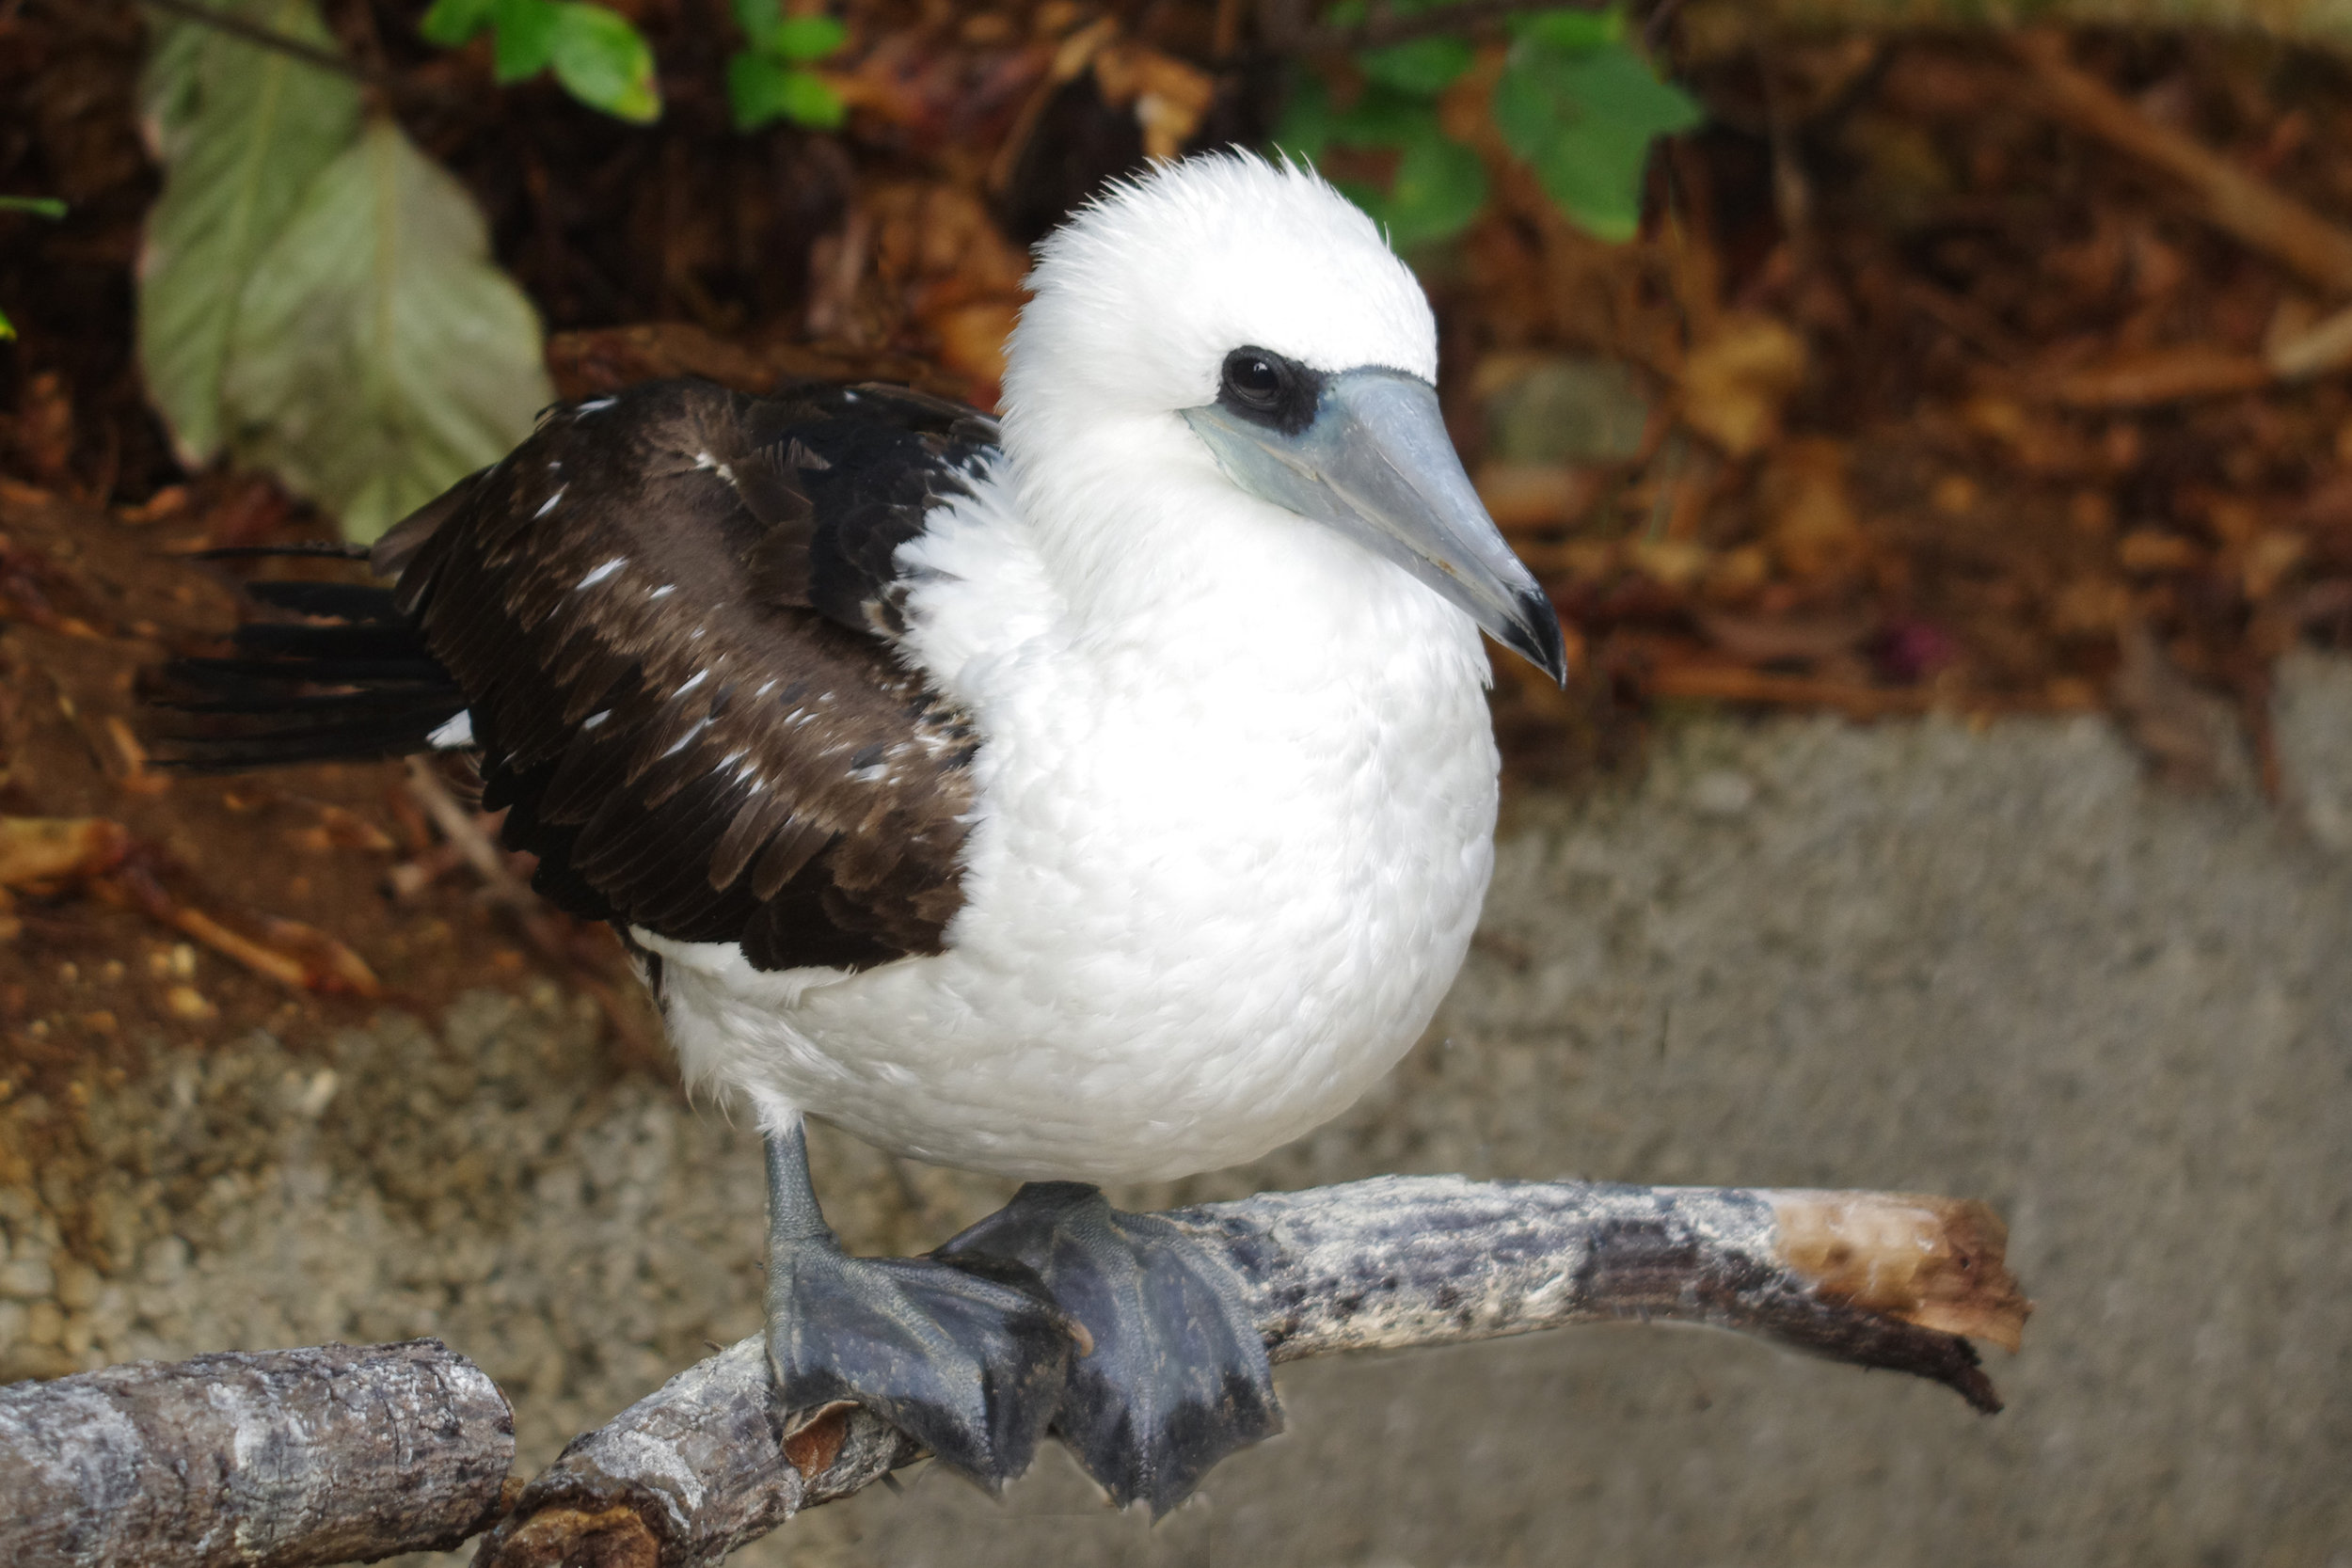 - BirdLife is calling on the Australian Government to commit to an end of mining on Christmas Island and to continue to improve the control of invasive species. There is also an urgent need for further research on threatened taxa to facilitate direct conservation actions.